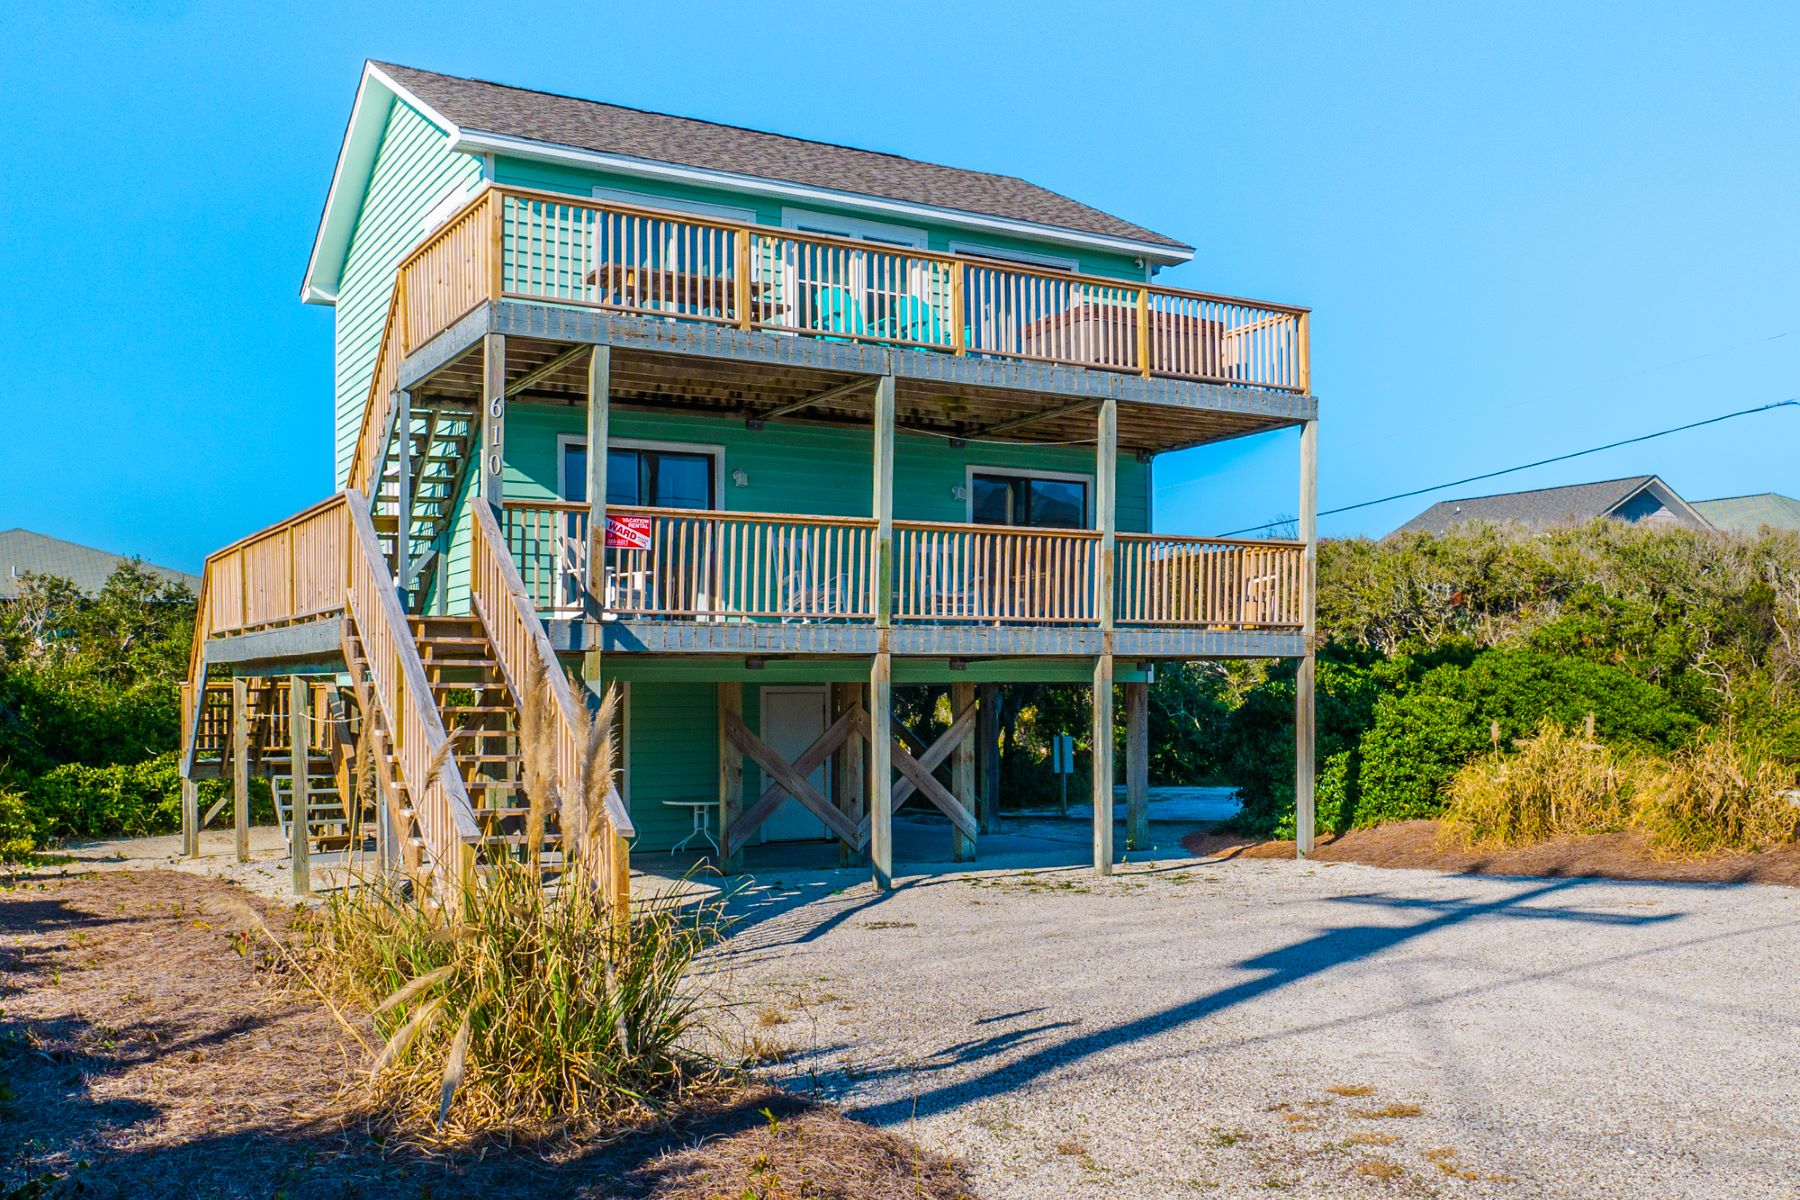 Single Family Homes for Active at Coastal Beach Home on Topsail Beach 610 N Anderson Blvd. Topsail Beach, North Carolina 28445 United States